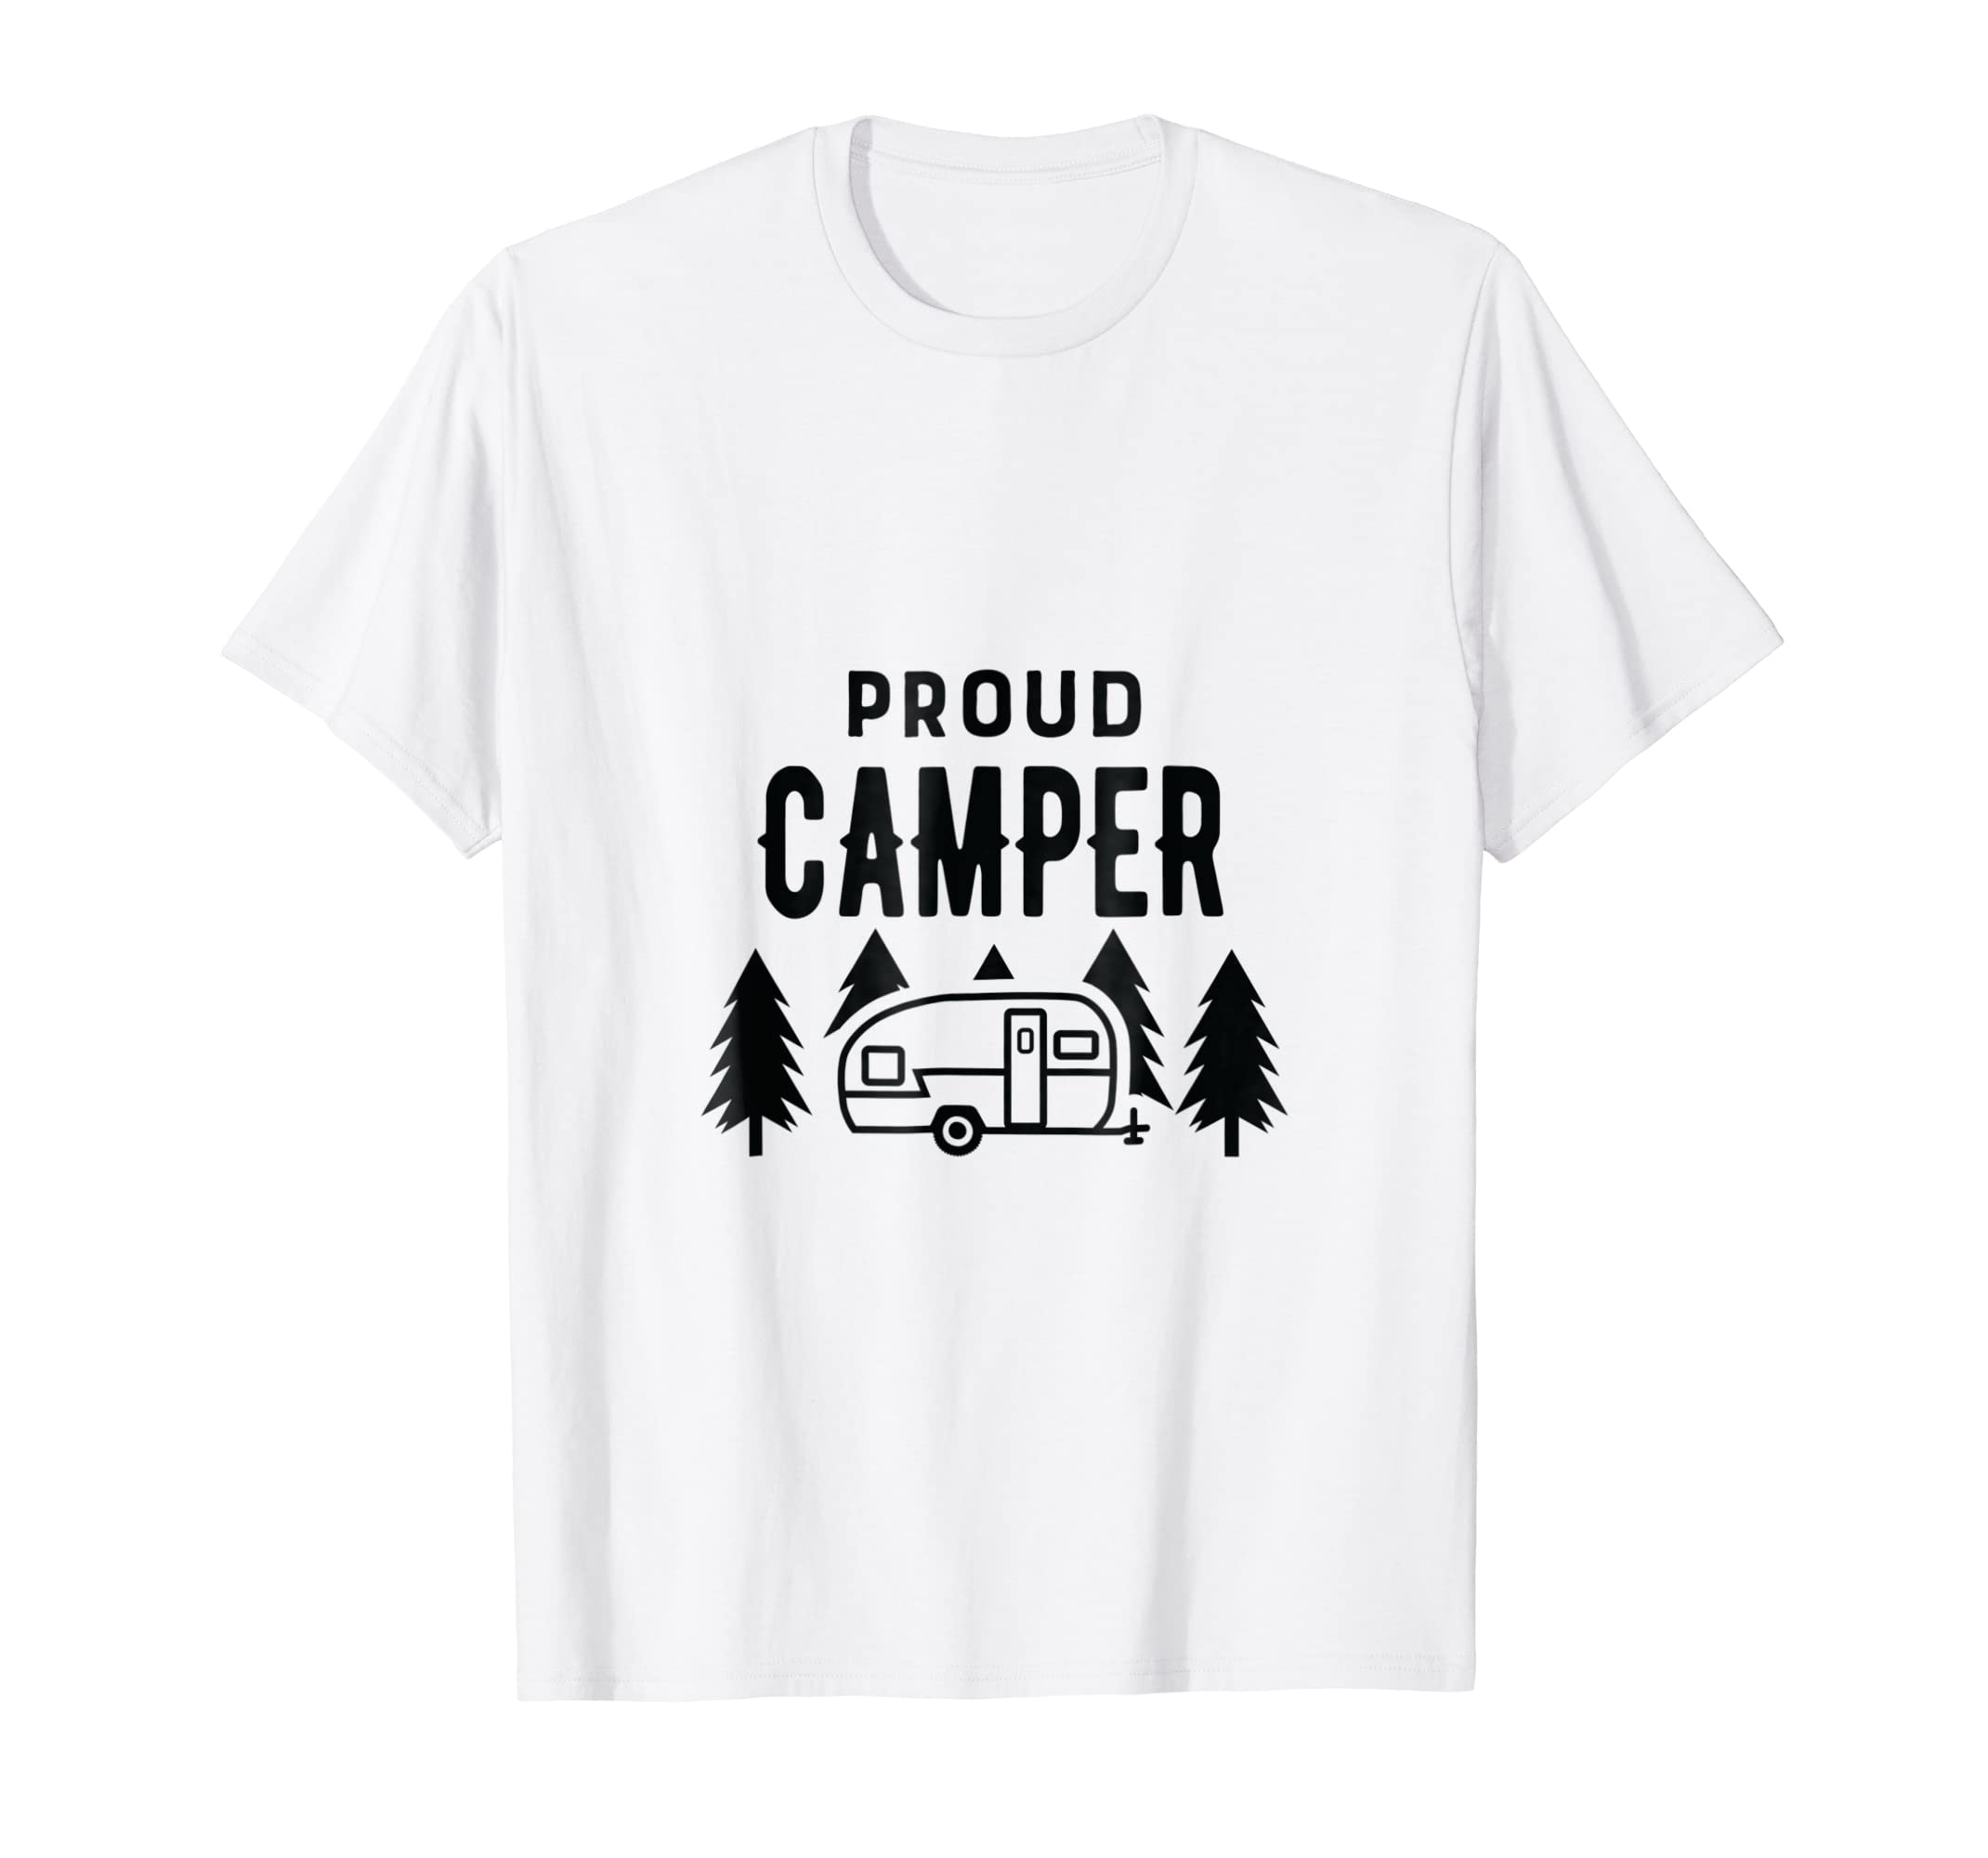 7883fdce7961 Amazon.com  Proud Camper Funny Cute T Shirt for Women Men Kids Camping   Clothing